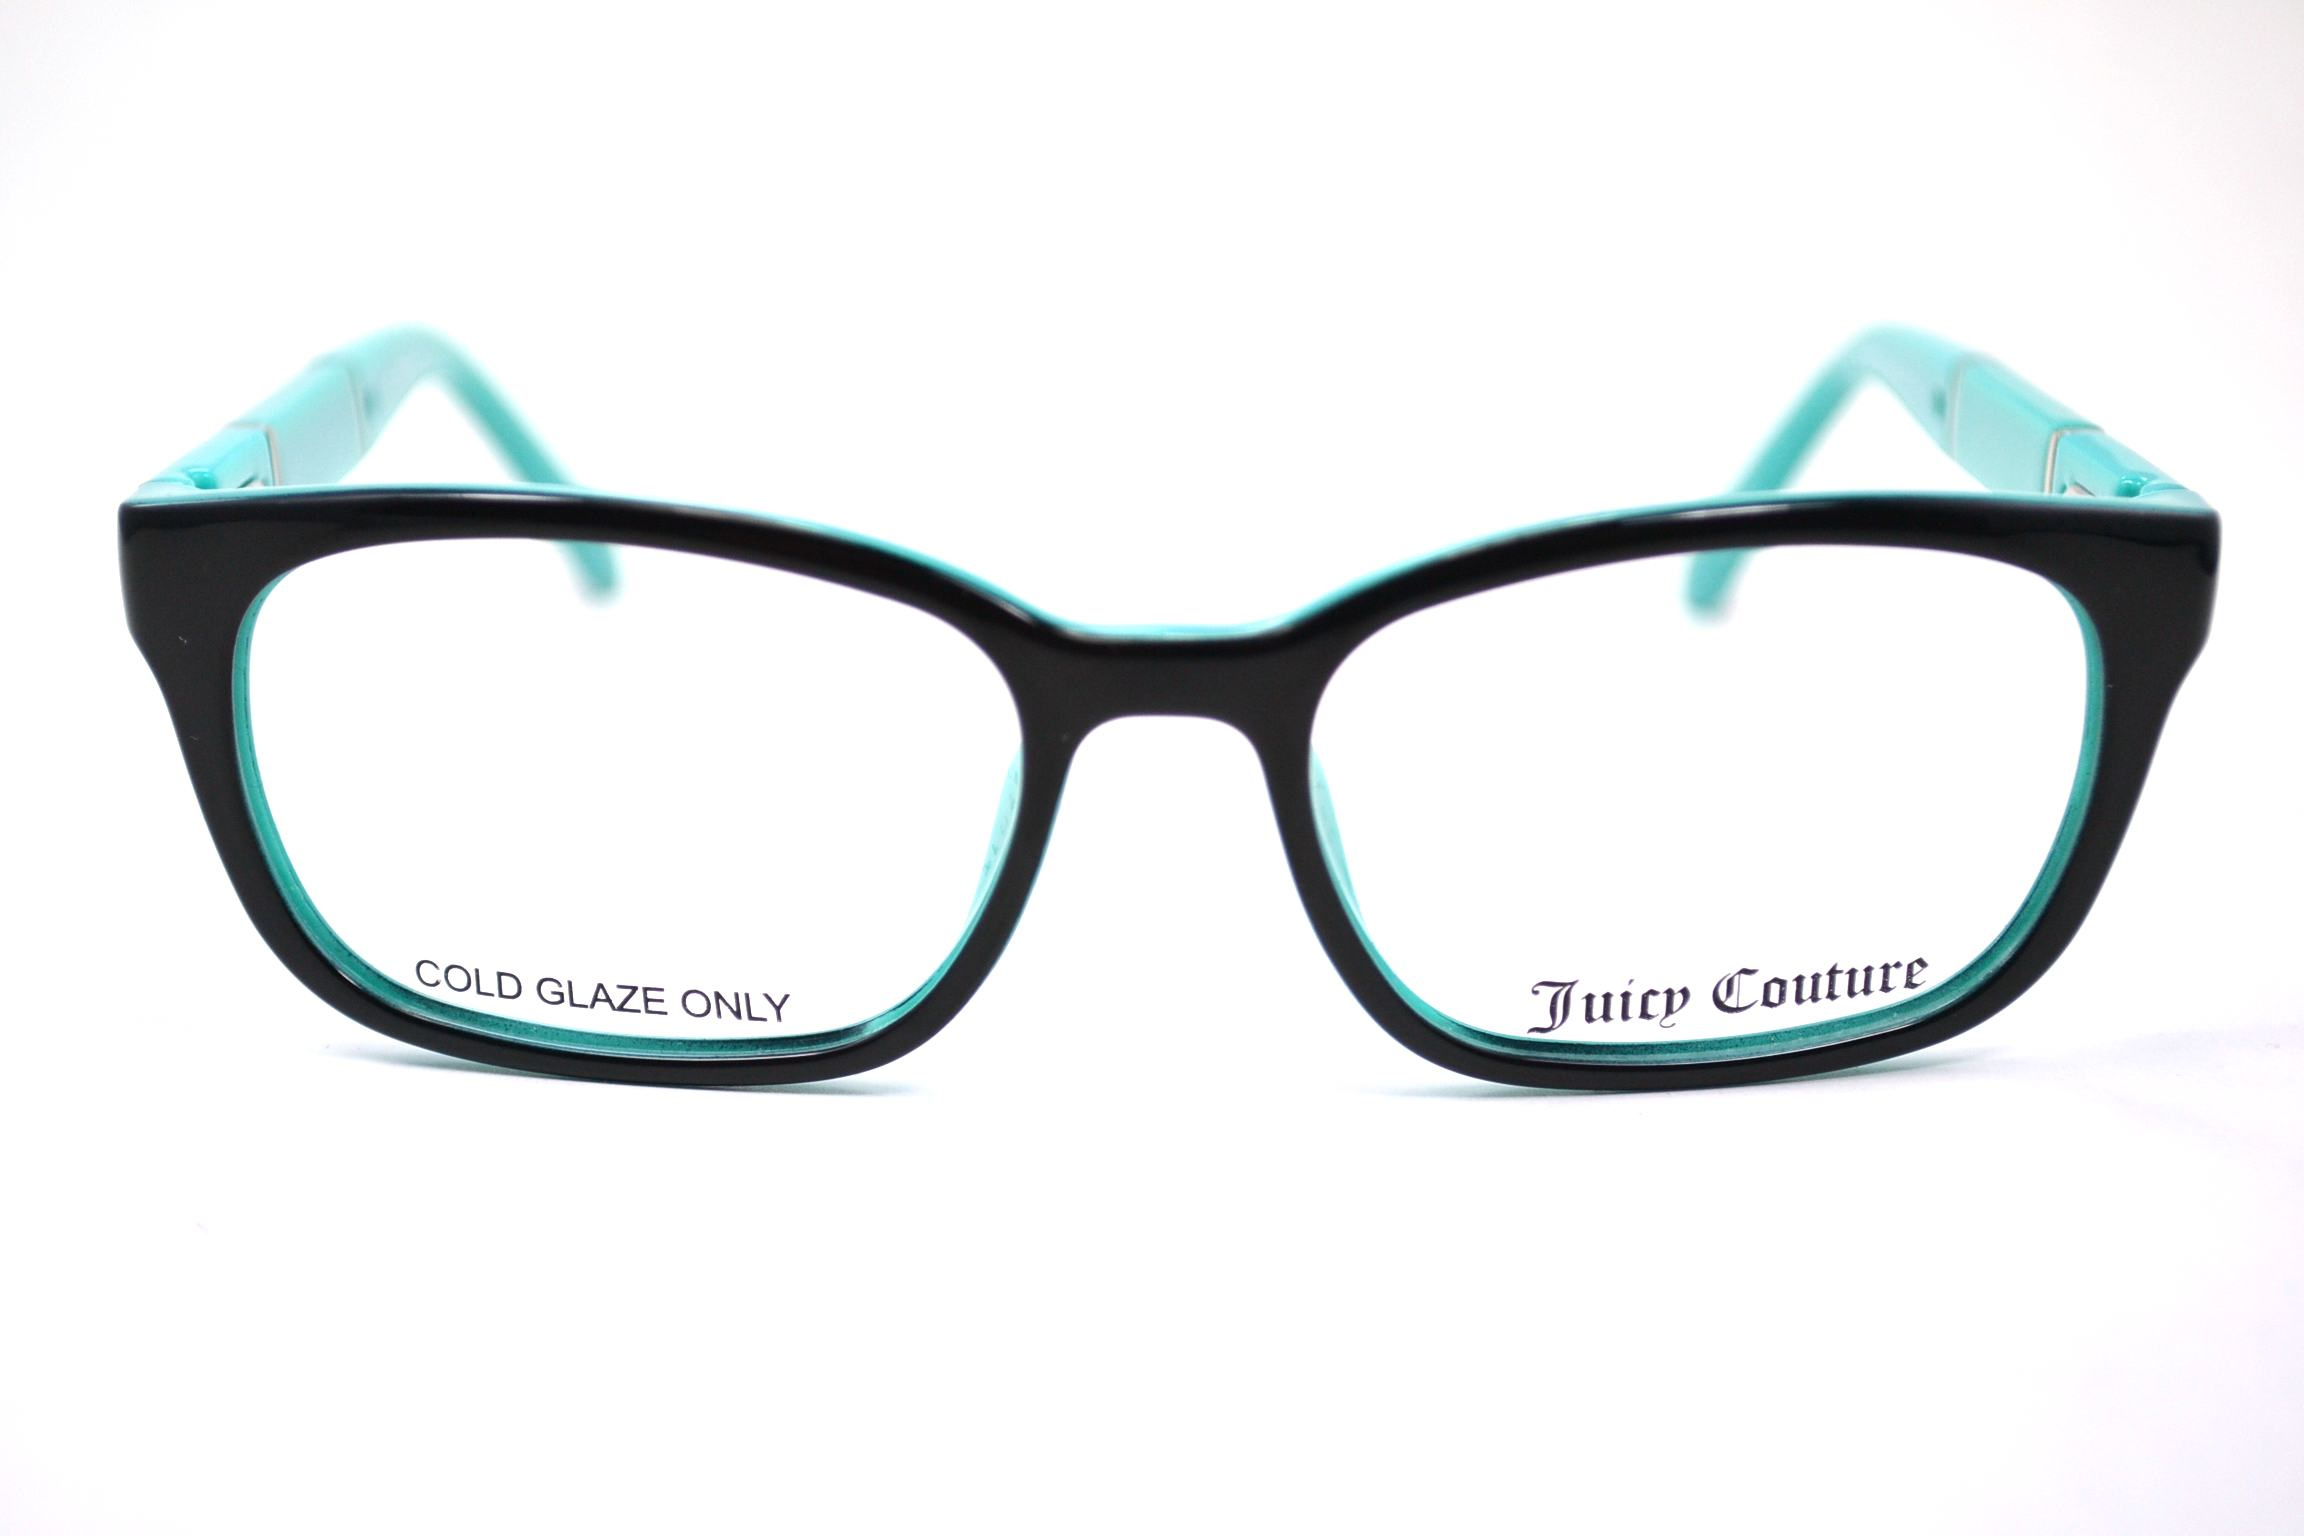 f9c22f5acd JUICY COUTURE Eyeglasses 904 0DH4 Black Teal 47MM - Walmart.com